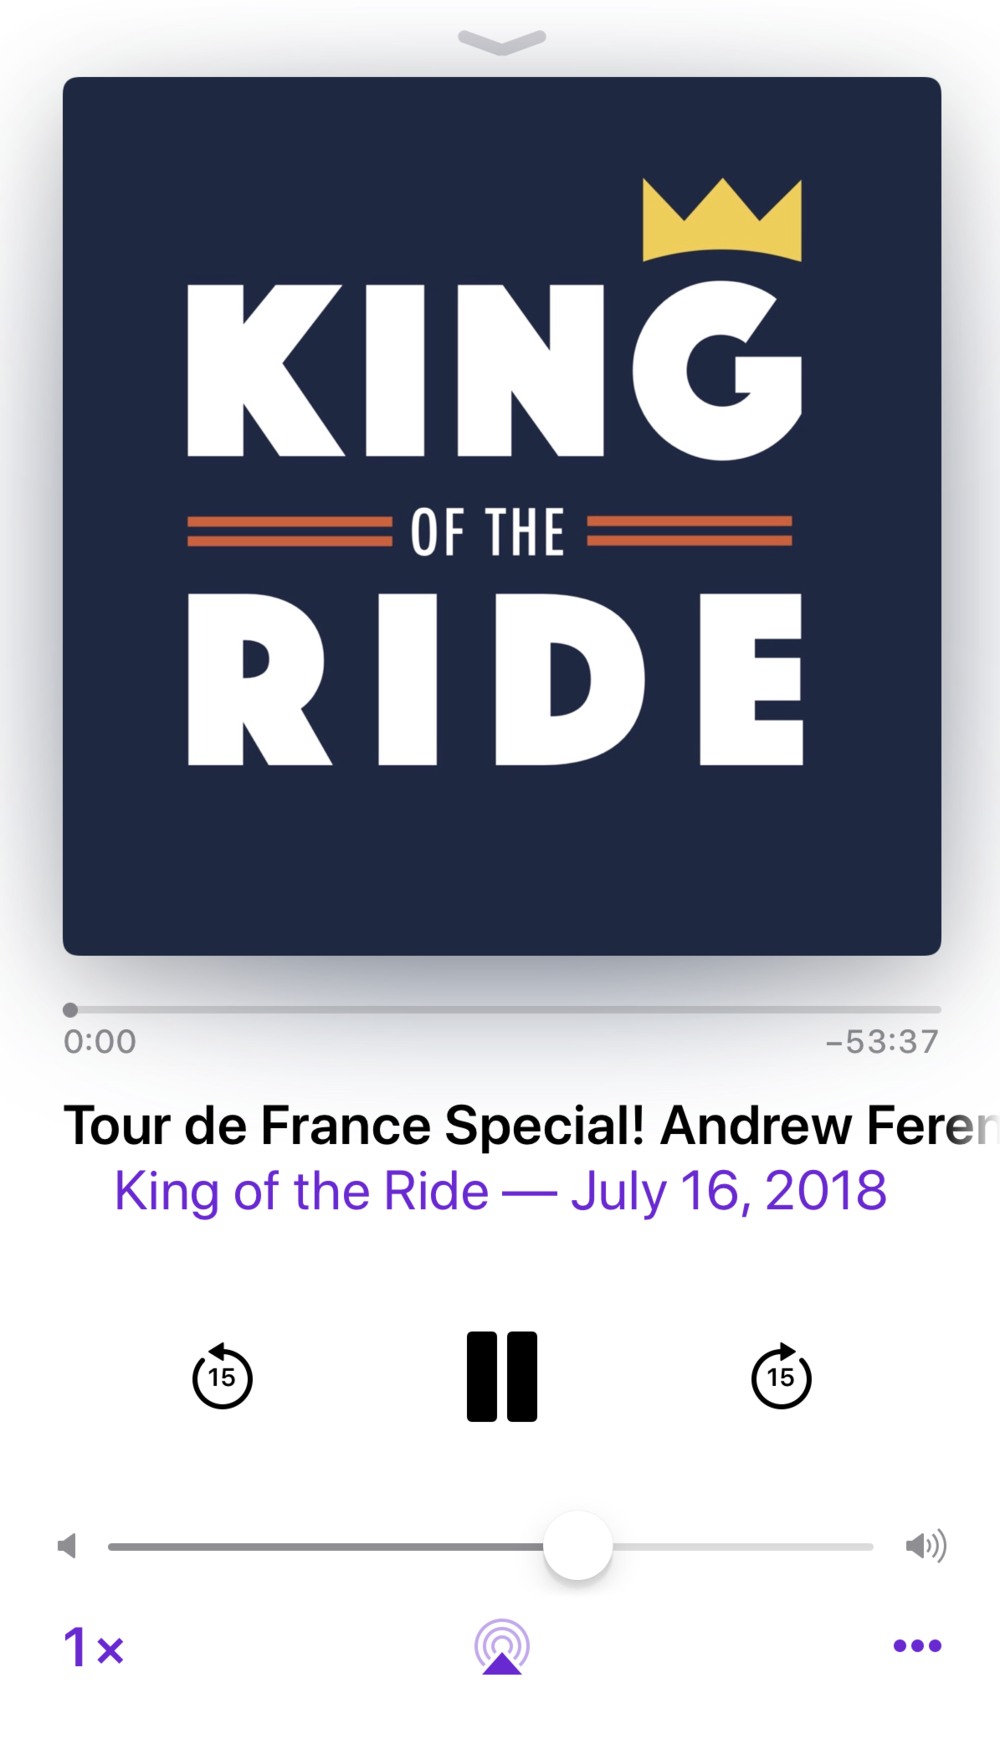 This is my final design as a  podcast cover.  My client wanted a bold, clean design that would rival other podcasts in the cycling genre on iTunes.